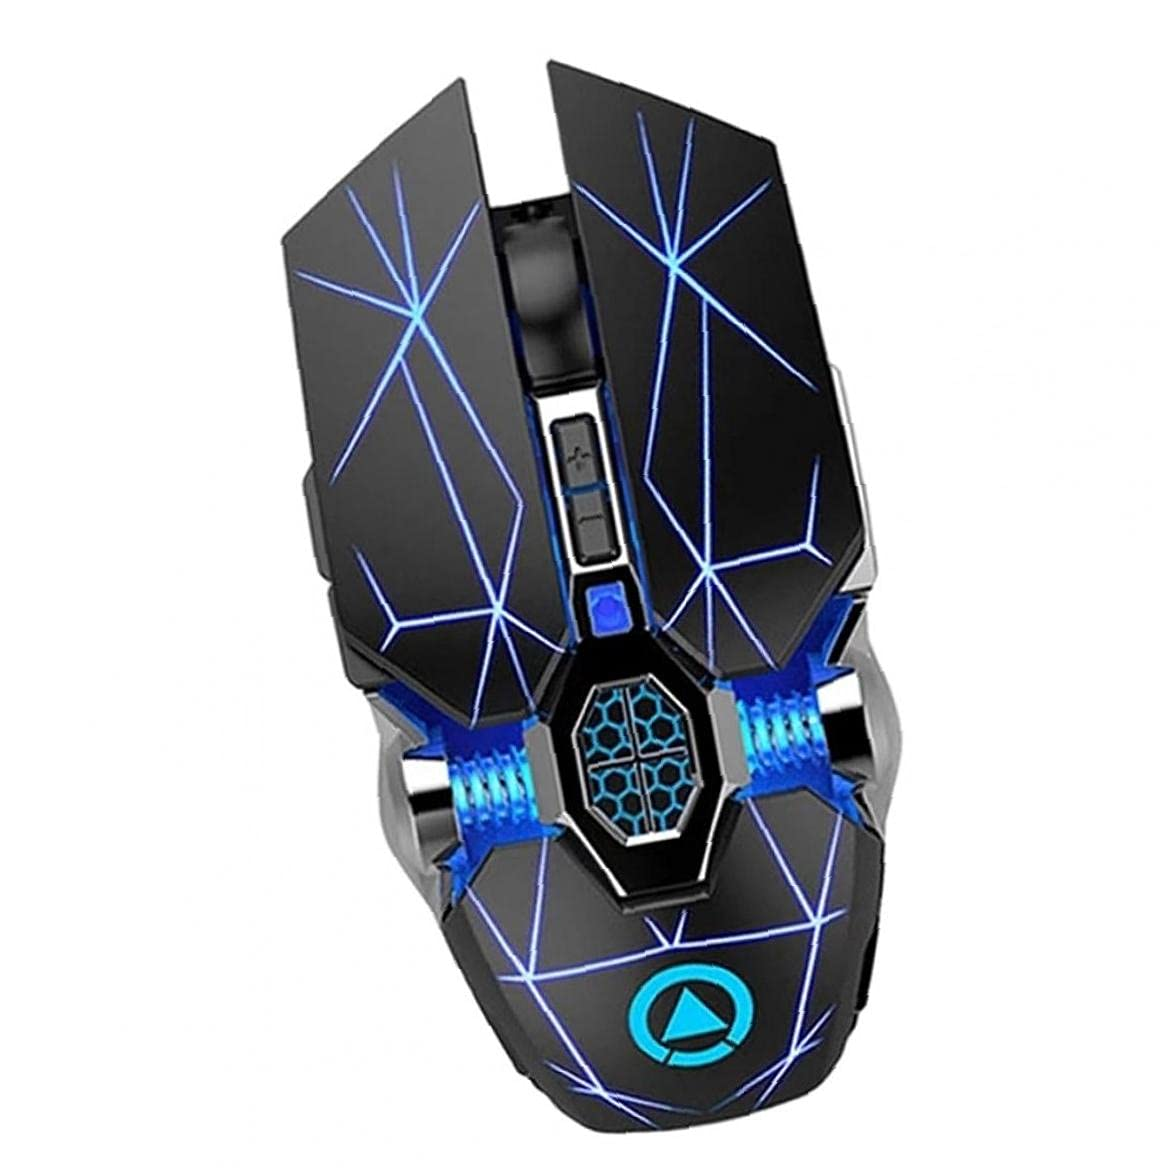 Wireless 25% OFF 2021 Gaming Mouse Rechargeable USB fo Color with 7 LED